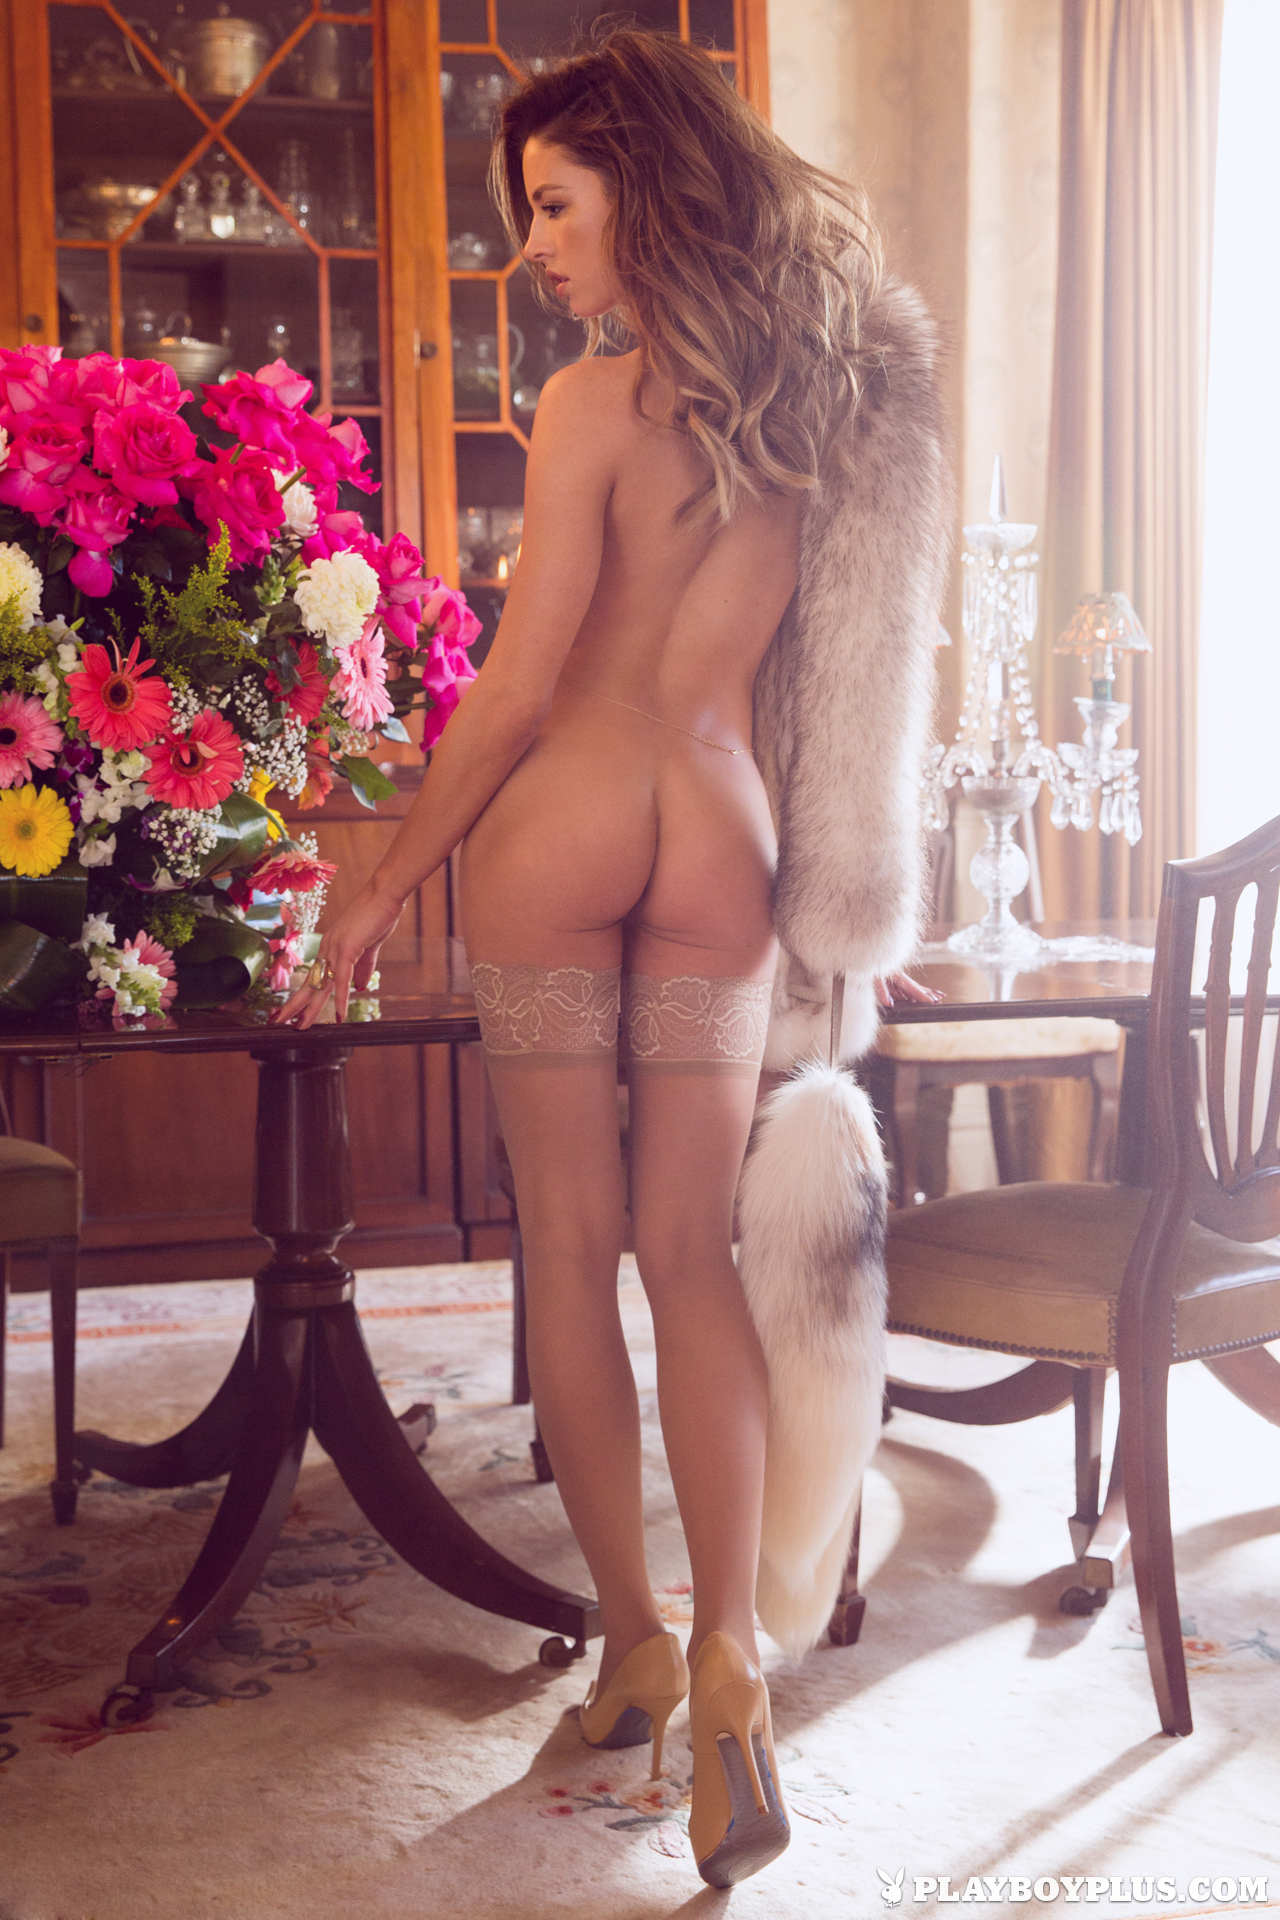 Brittany Brousseau in Indulgent - Centerfolds Blog